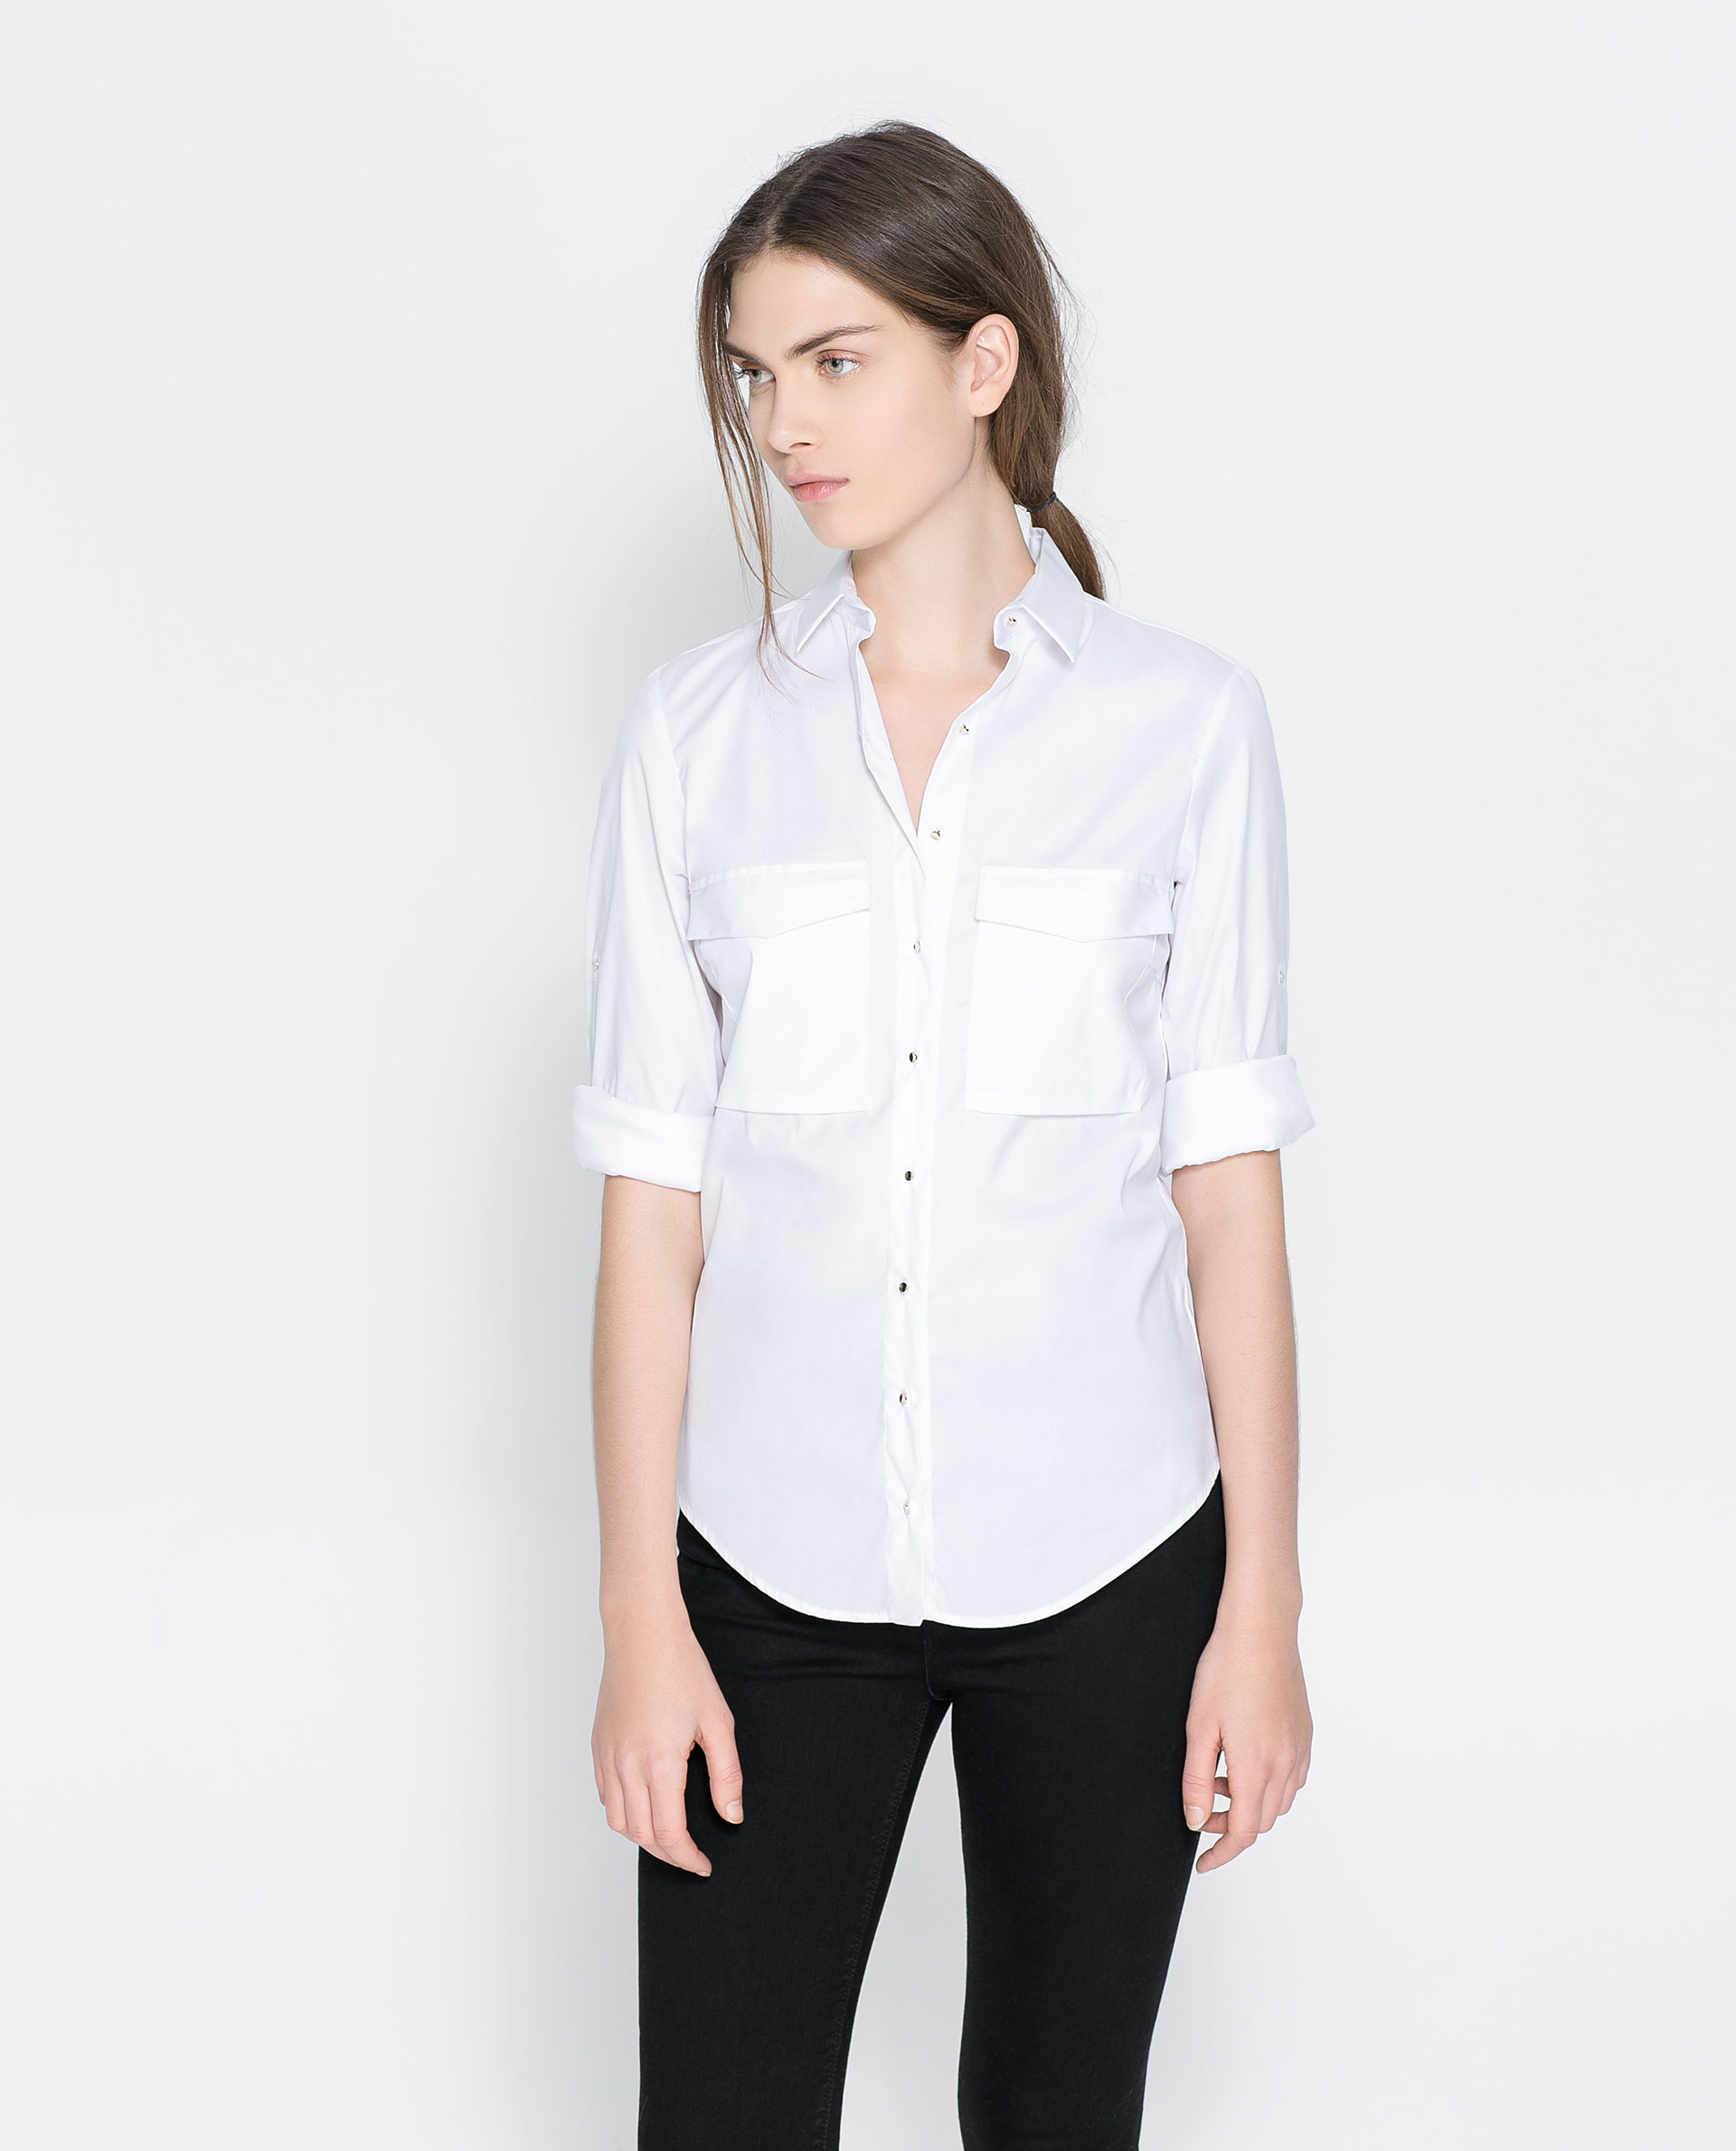 Zara shirt with pockets in white lyst for Zara mens shirts sale